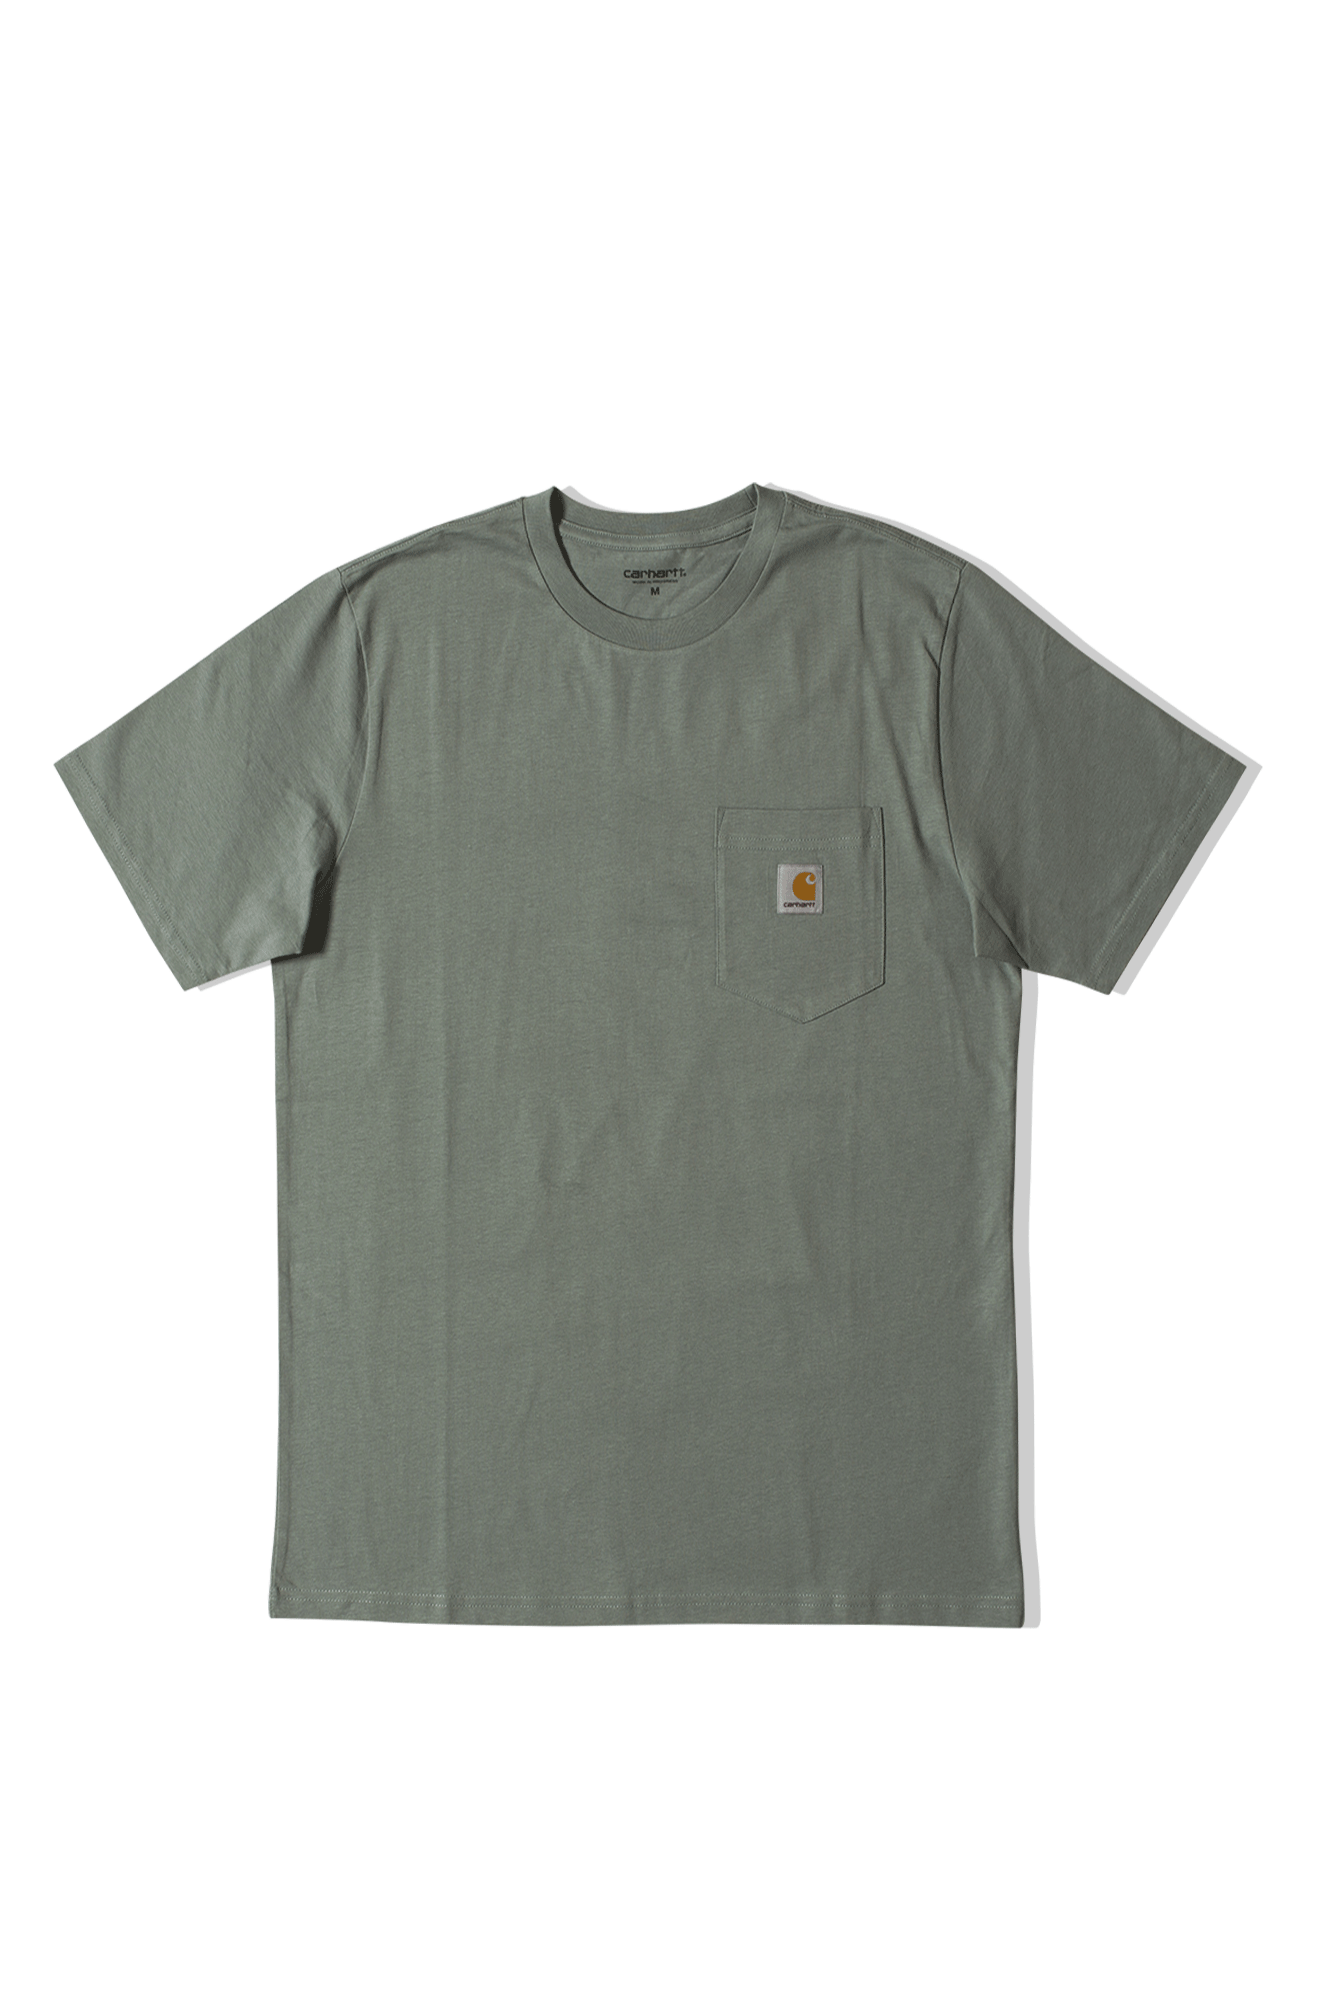 S/S Pocket T-Shirt Grigio